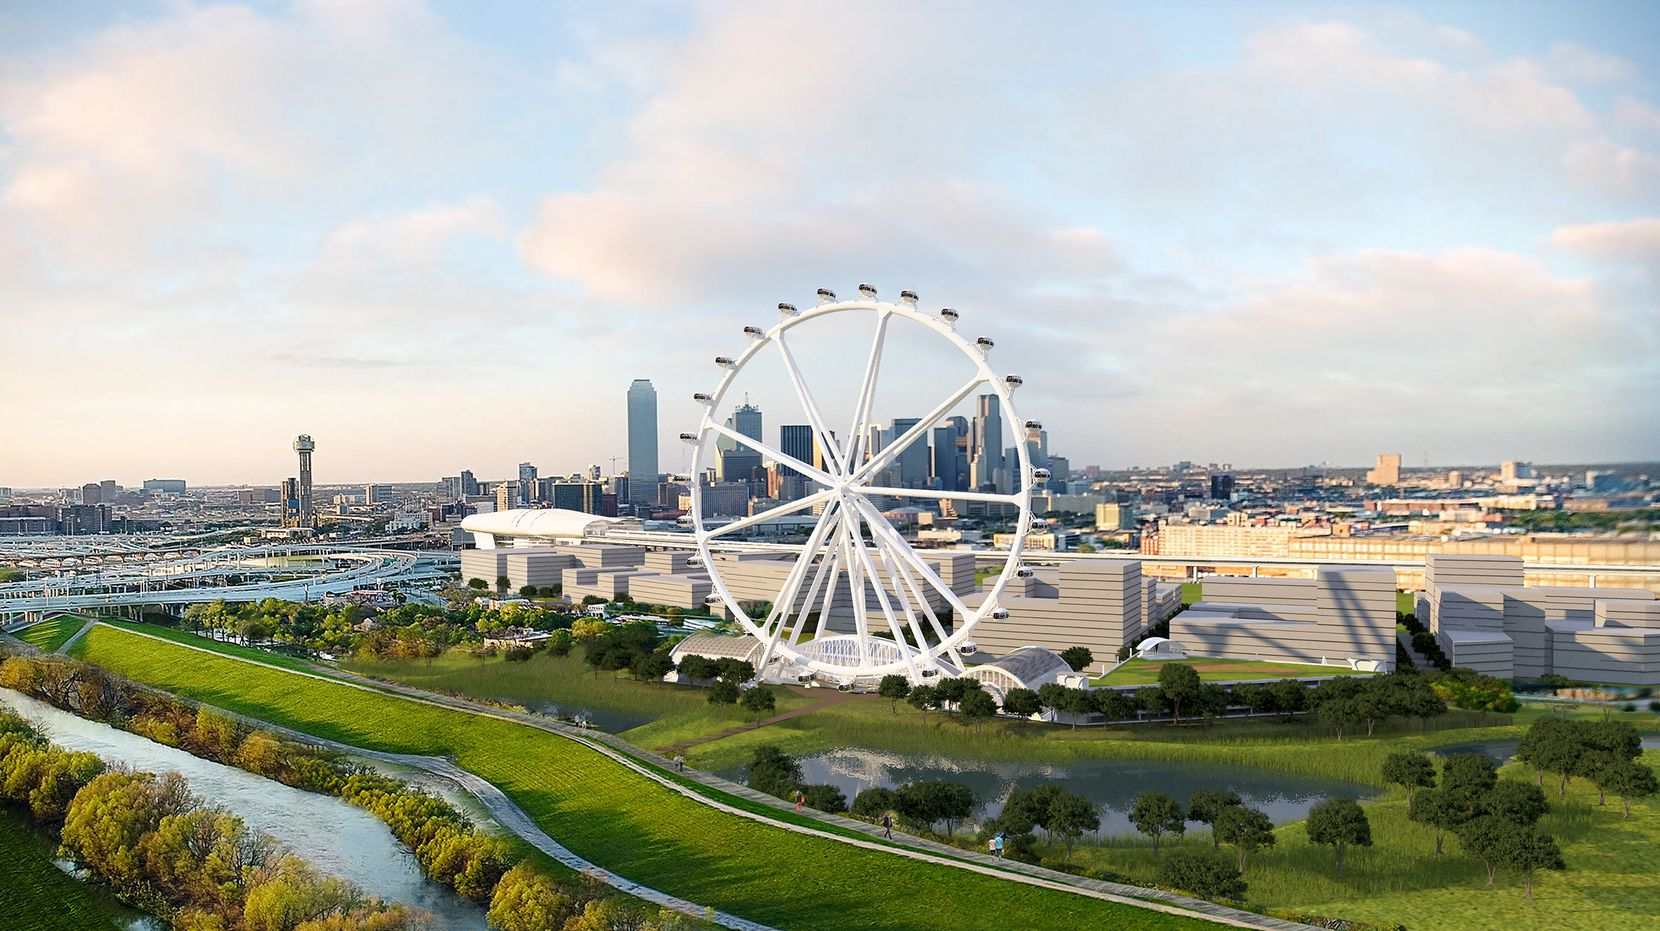 Developers want to build a giant observation wheel on the Trinity River south of downtown Dallas that would be bigger than the London Eye.